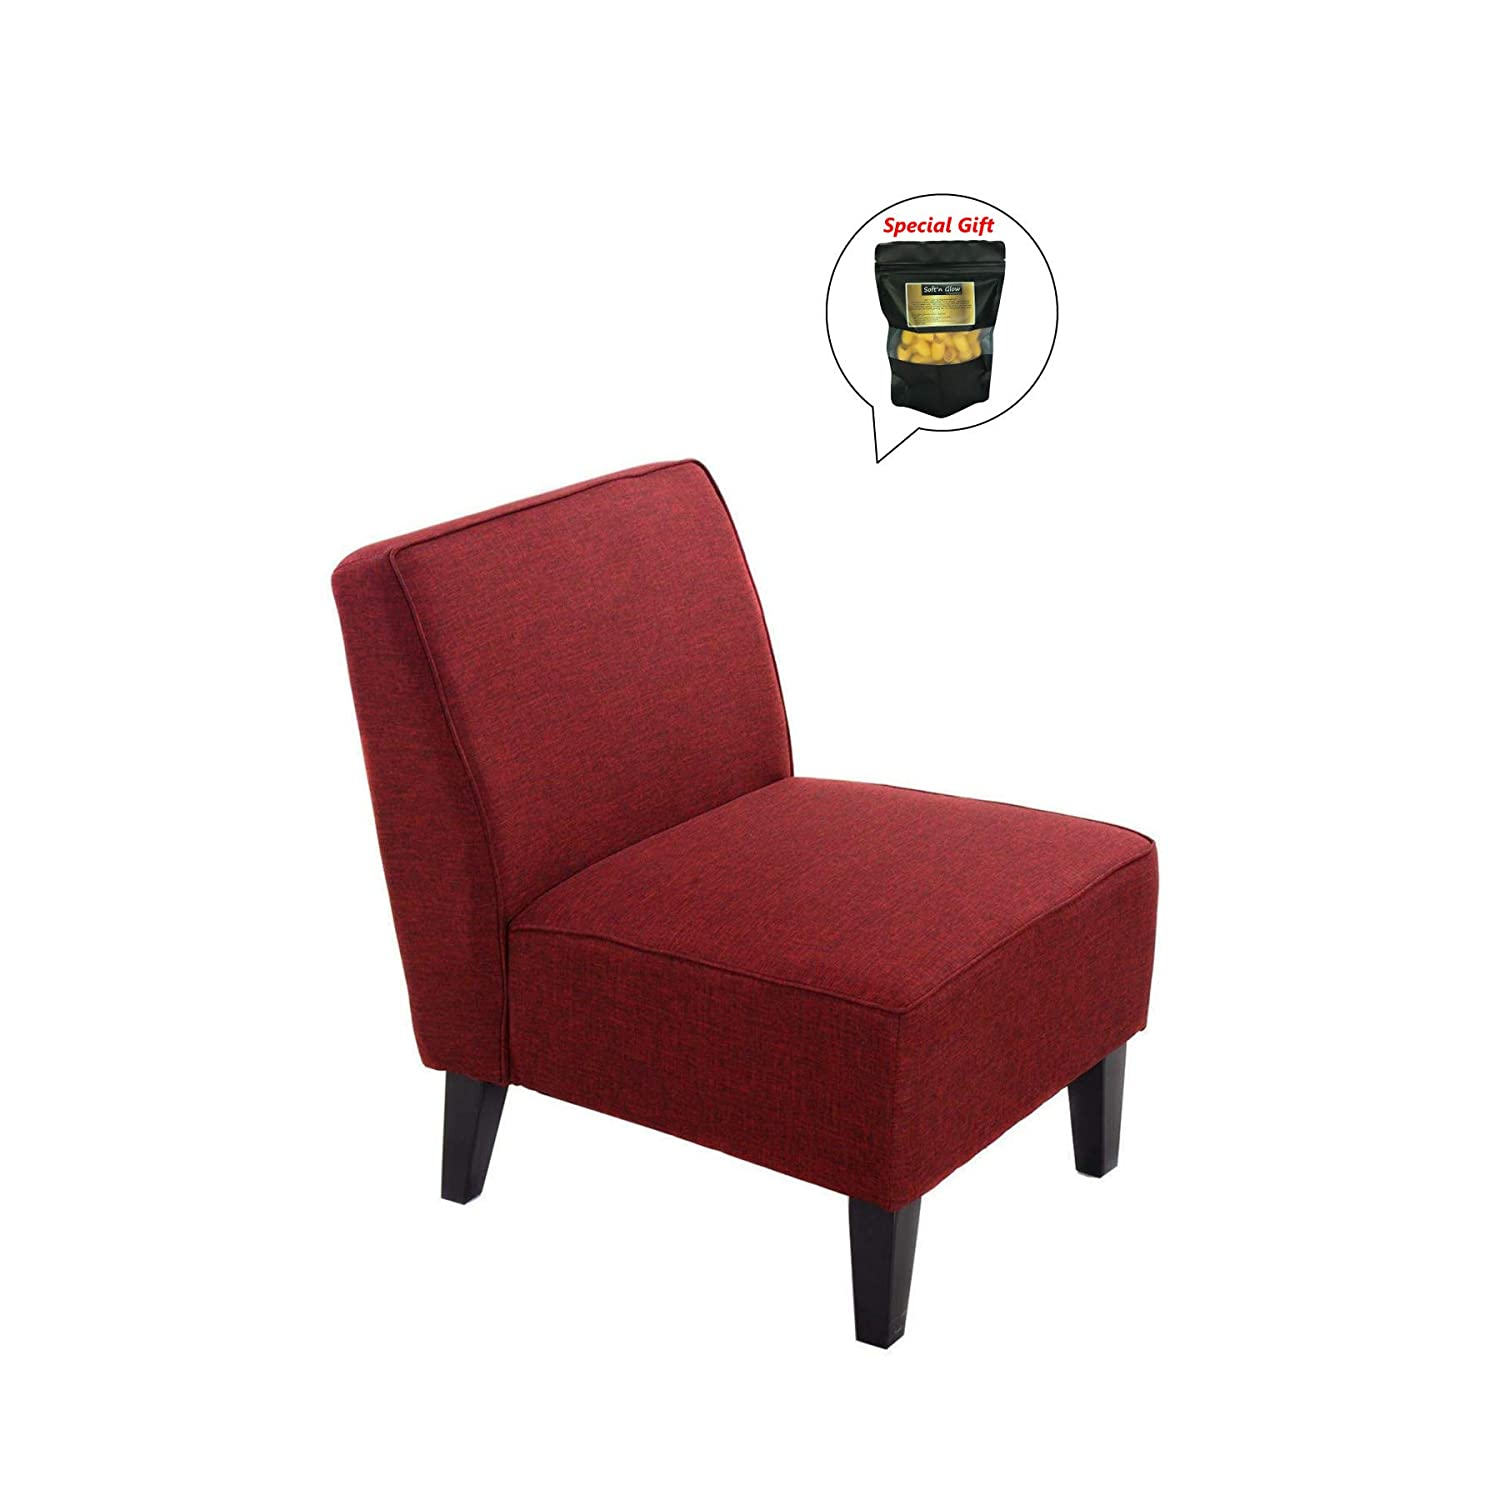 Amazon.com - New Red Accent Chair Armless Contemporary ...